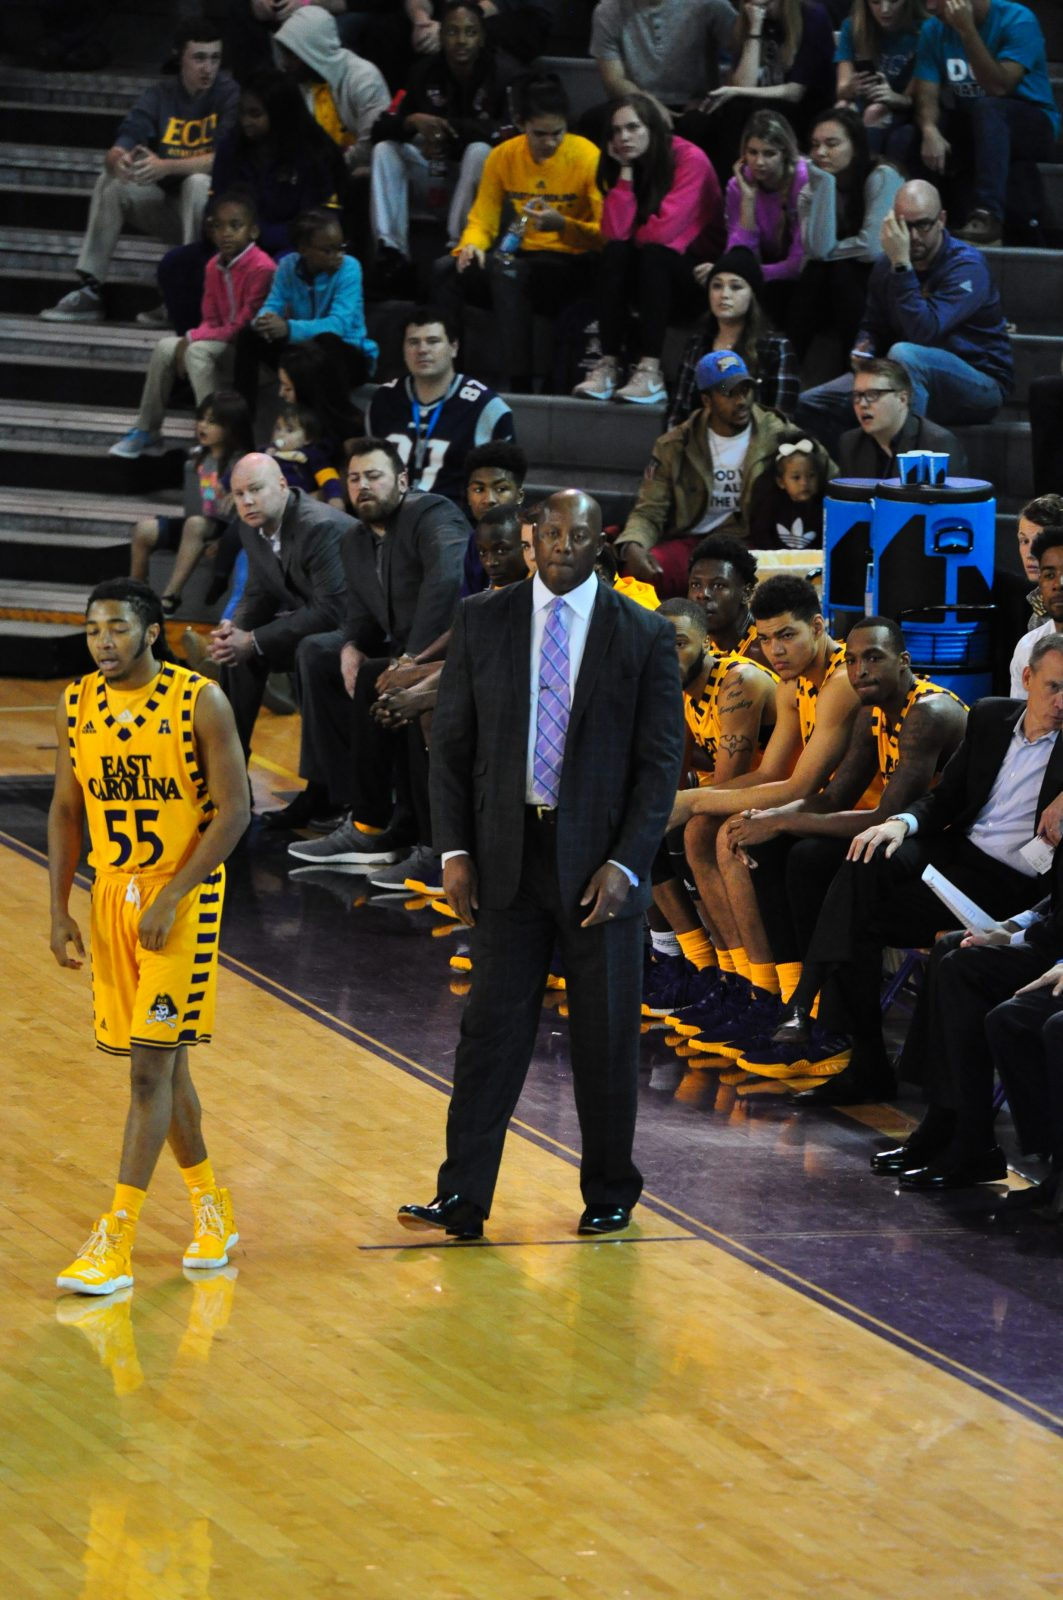 Michael Perry directs the Pirates after being named interim coach Wednesday. (Photo by Al Myatt)